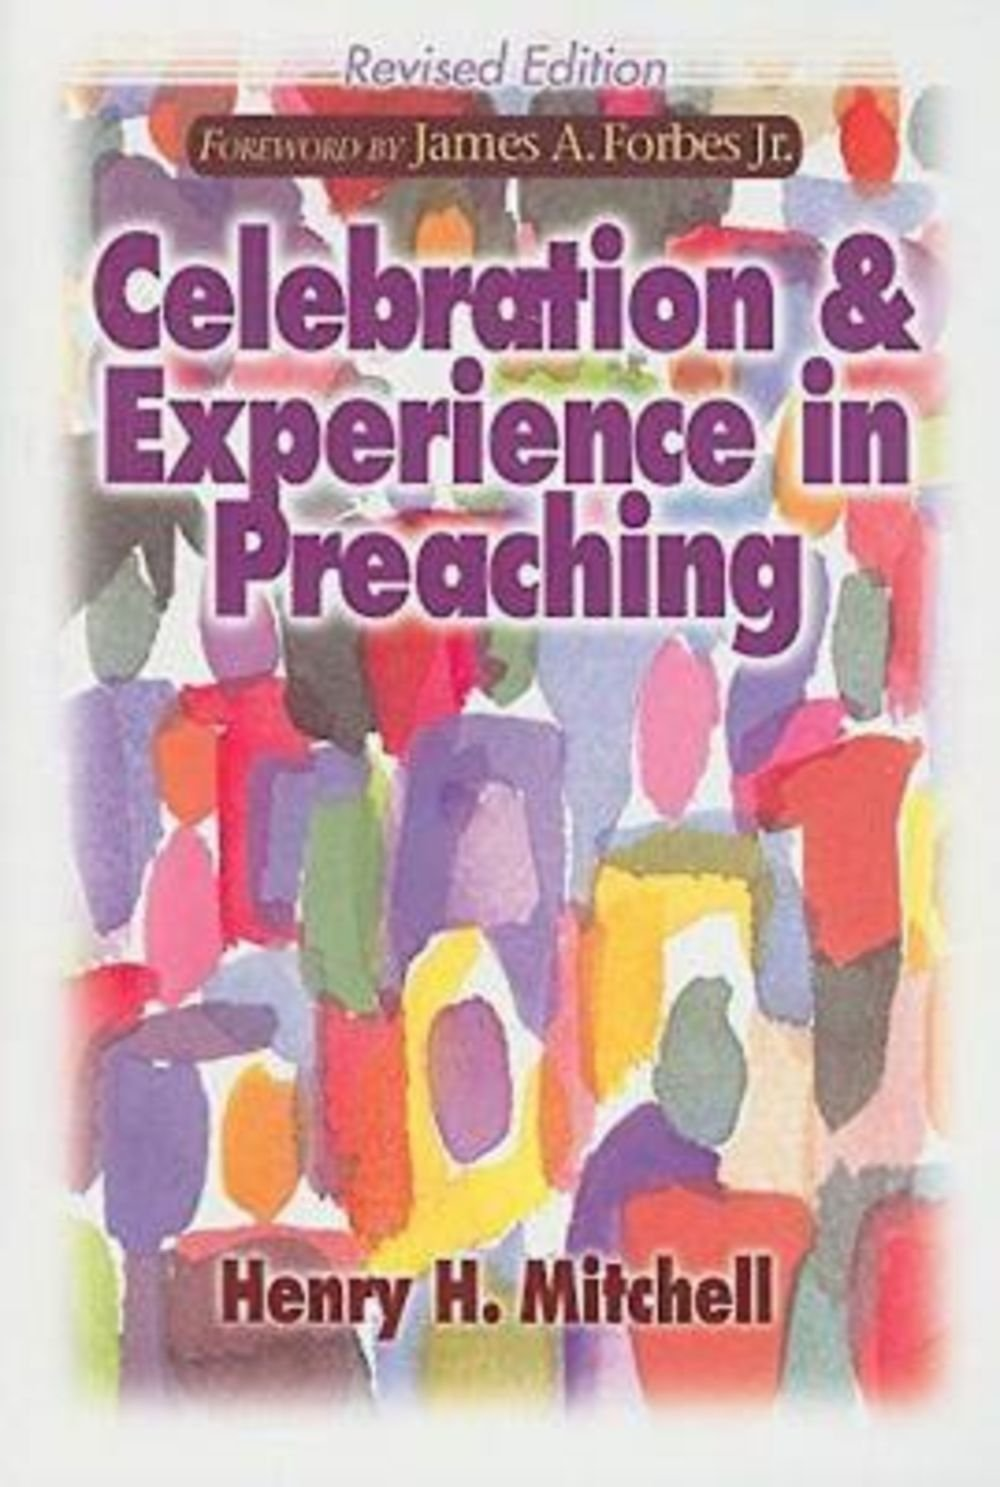 Celebration & Experience in Preaching: Revised Edition